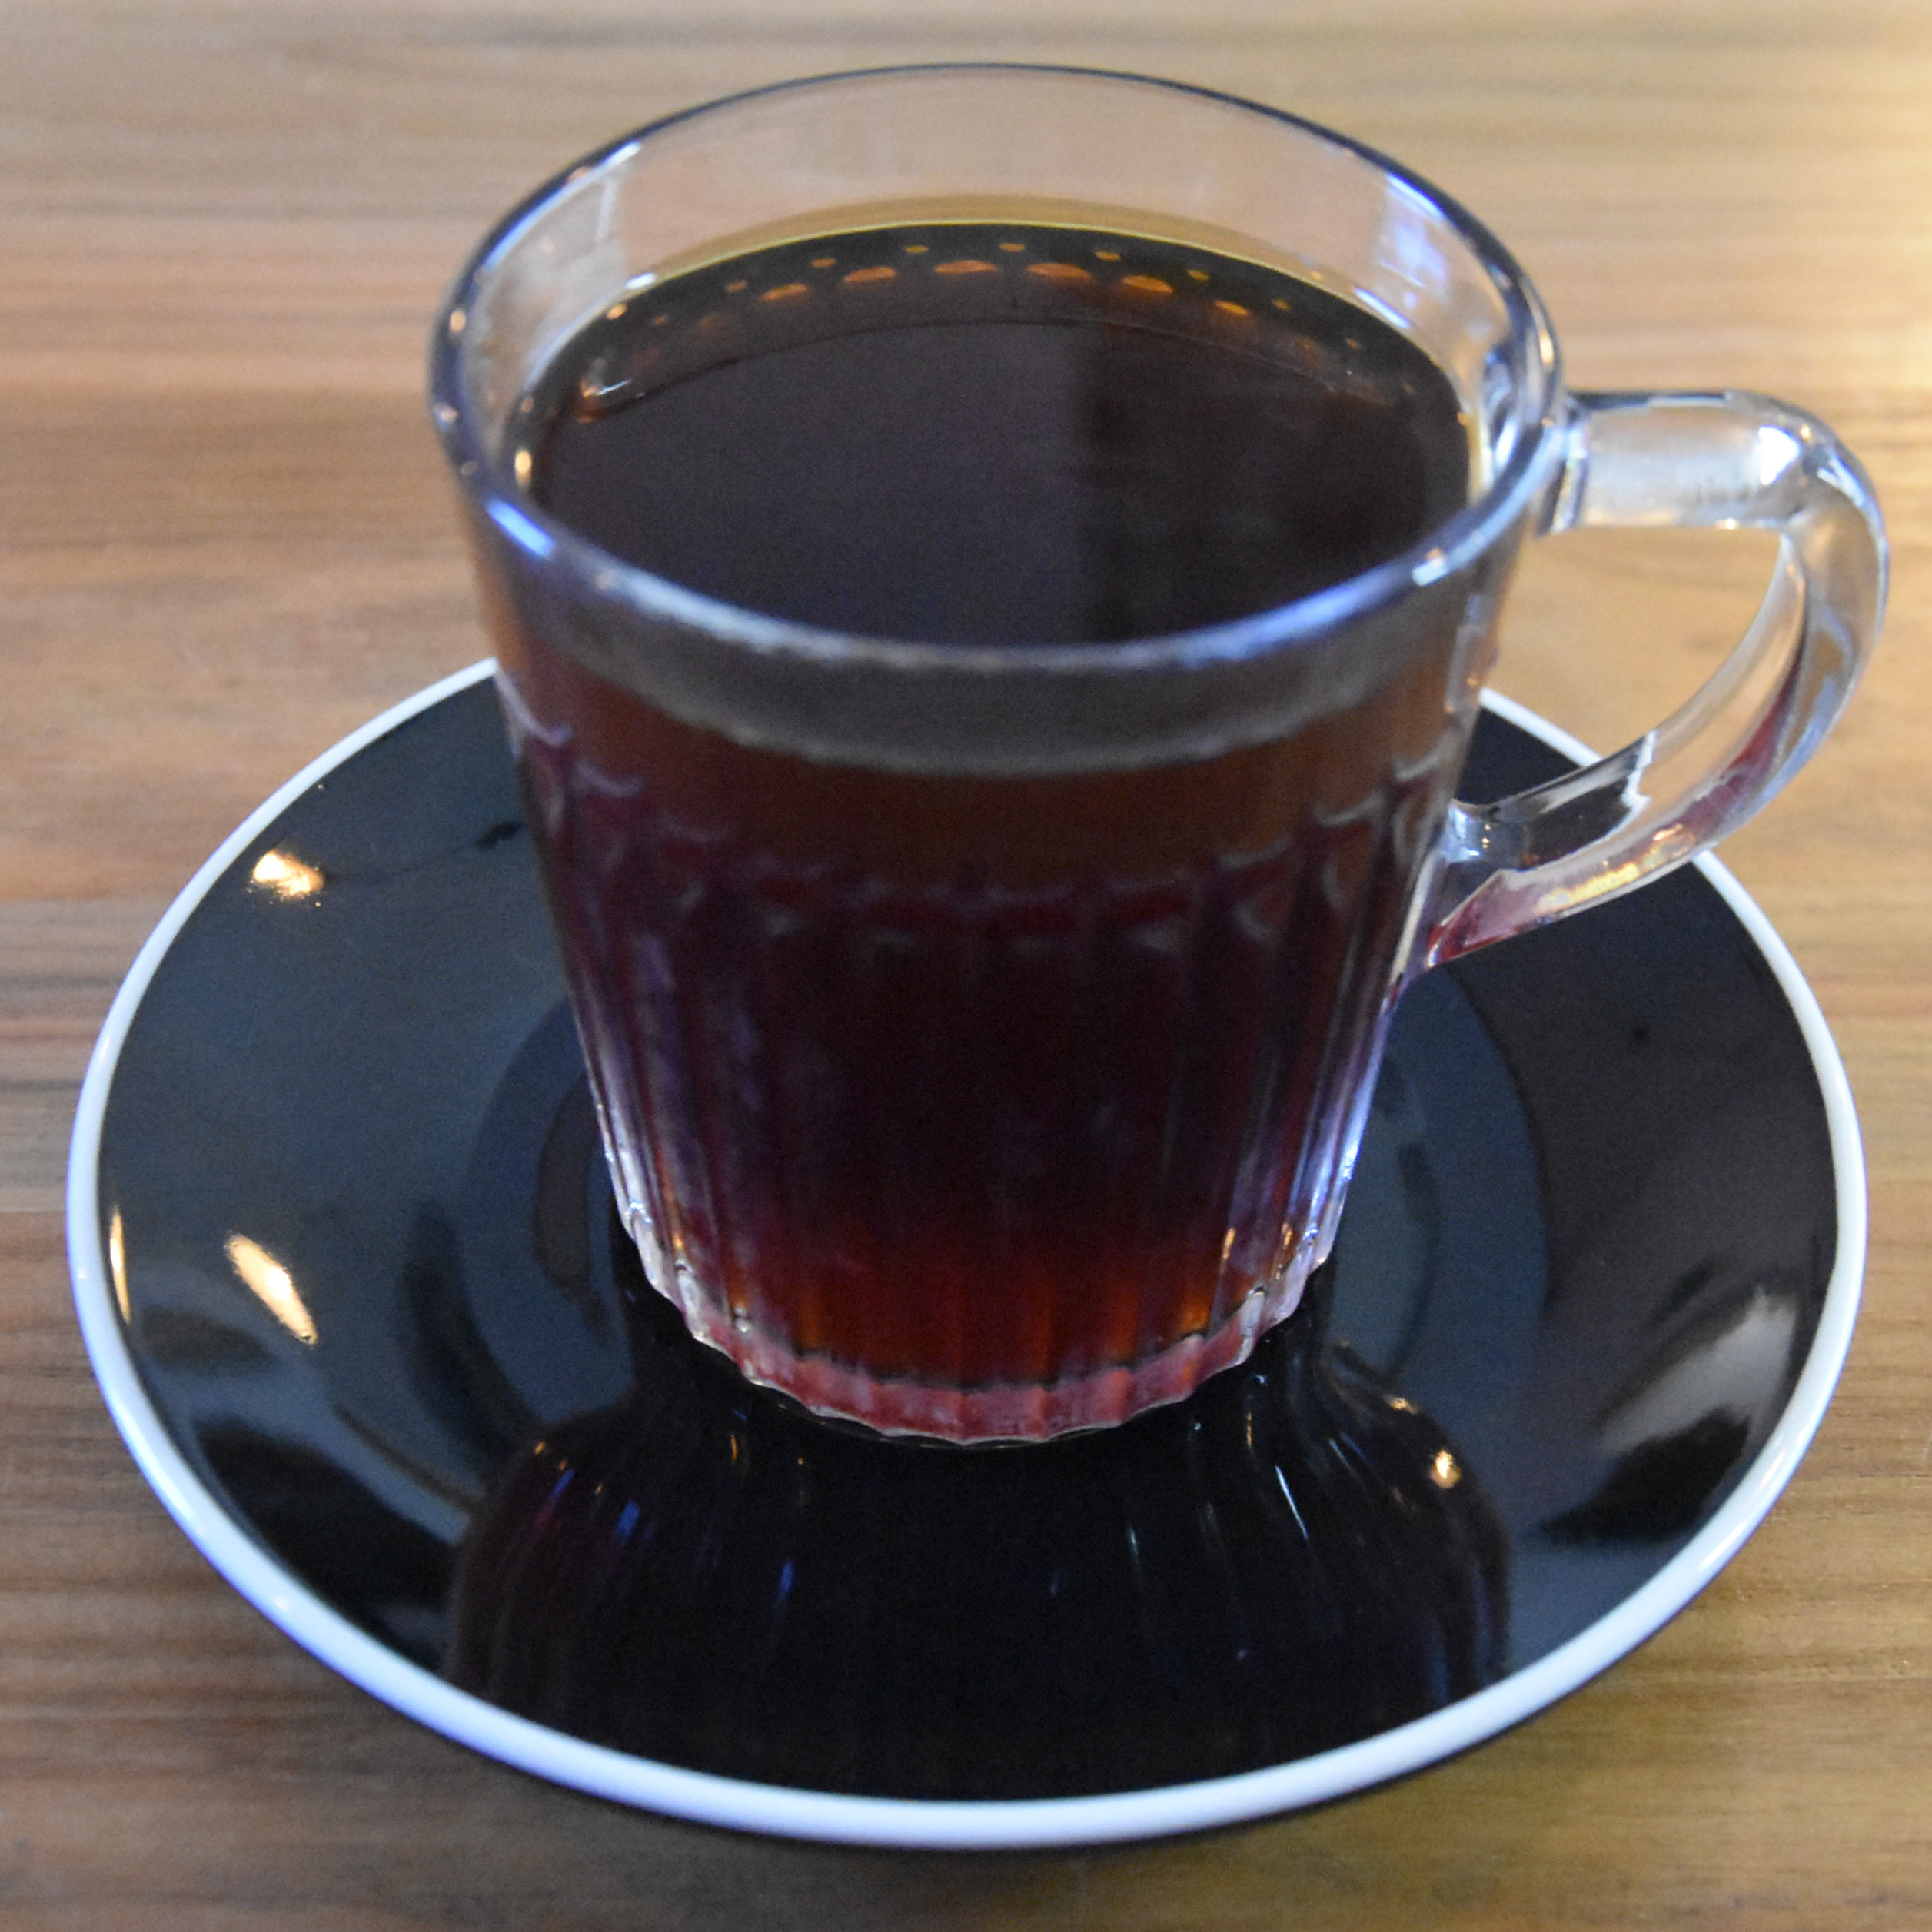 A V60 of the Worka Chelchelie, a natural yeast process coffee from Ethiopia, roasted by Yallah Coffee and served in a glass cup at MONIES in Putney.